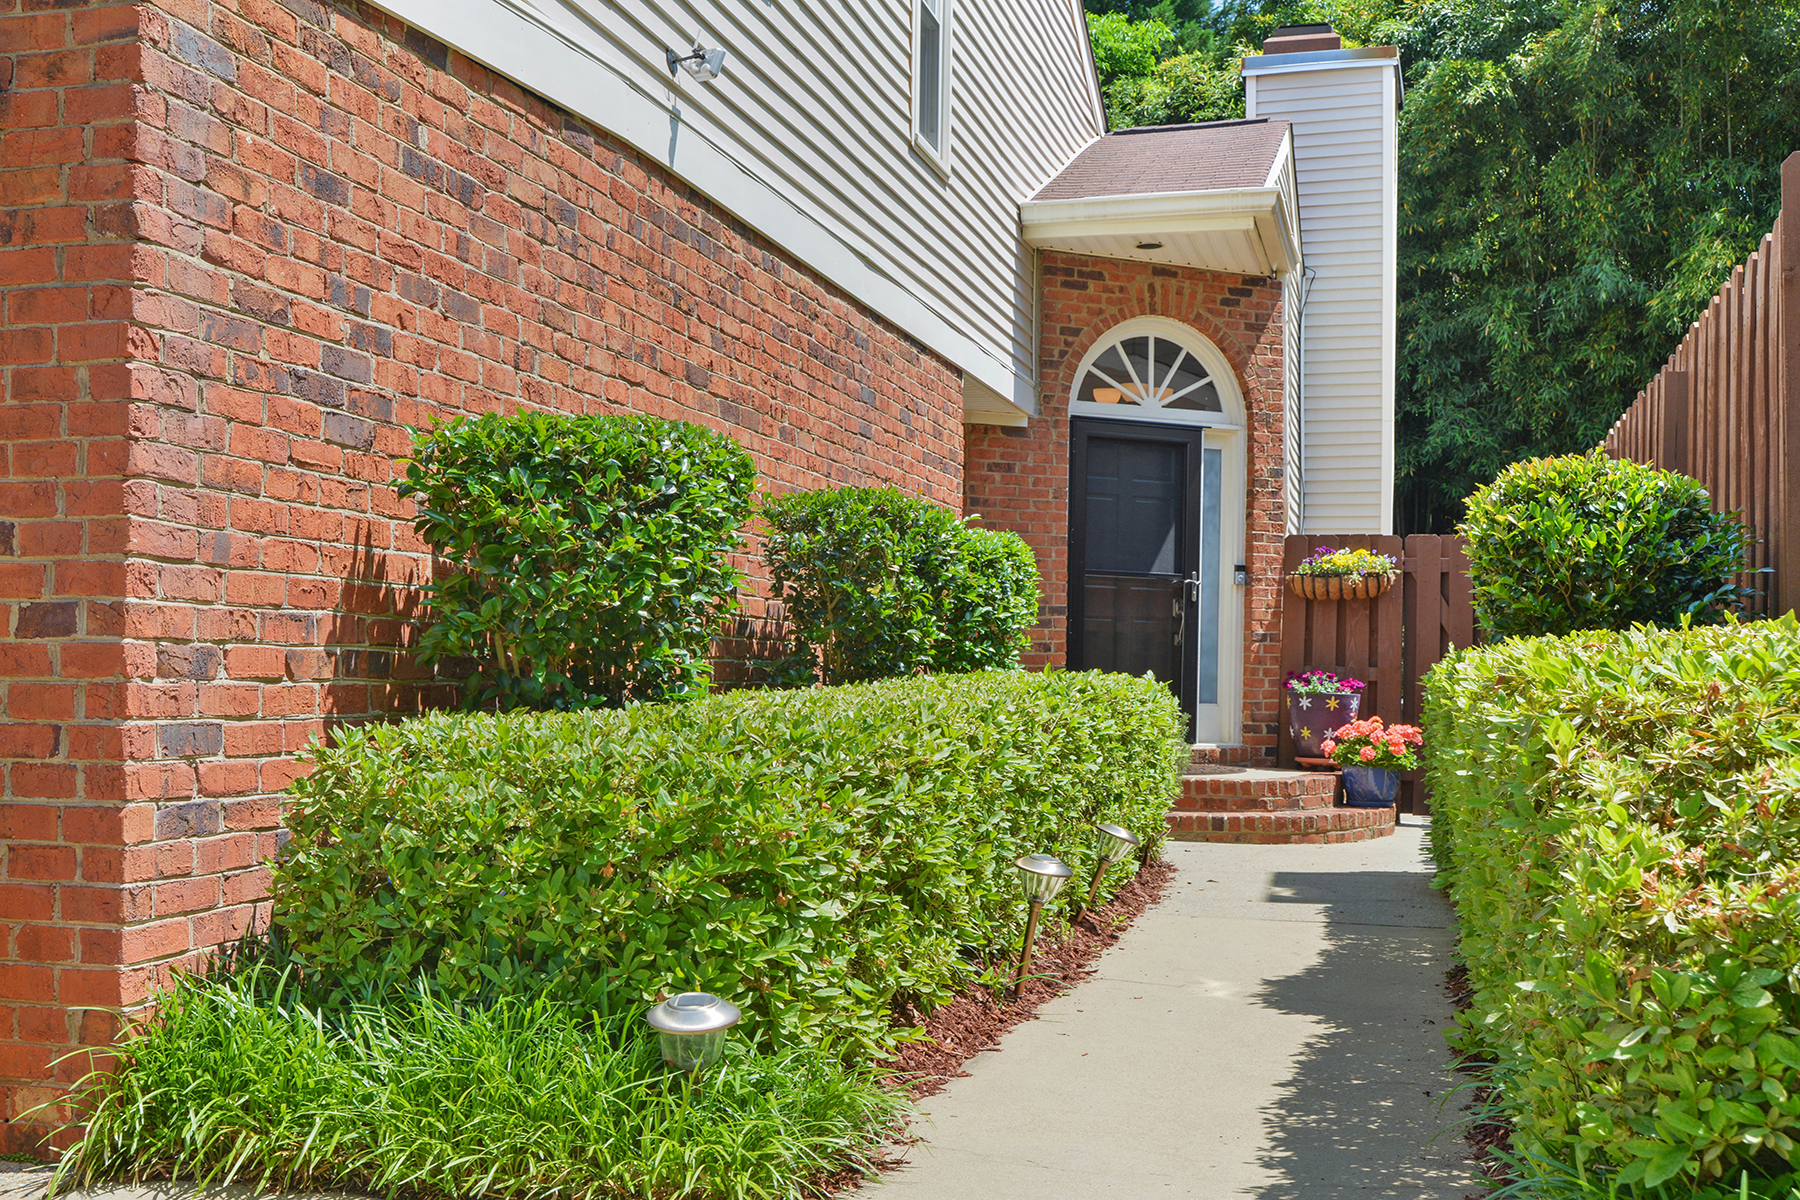 Townhouse for Sale at A Hidden Gem in the Heart of the City 1831 Rockridge Pl Atlanta, Georgia 30324 United States